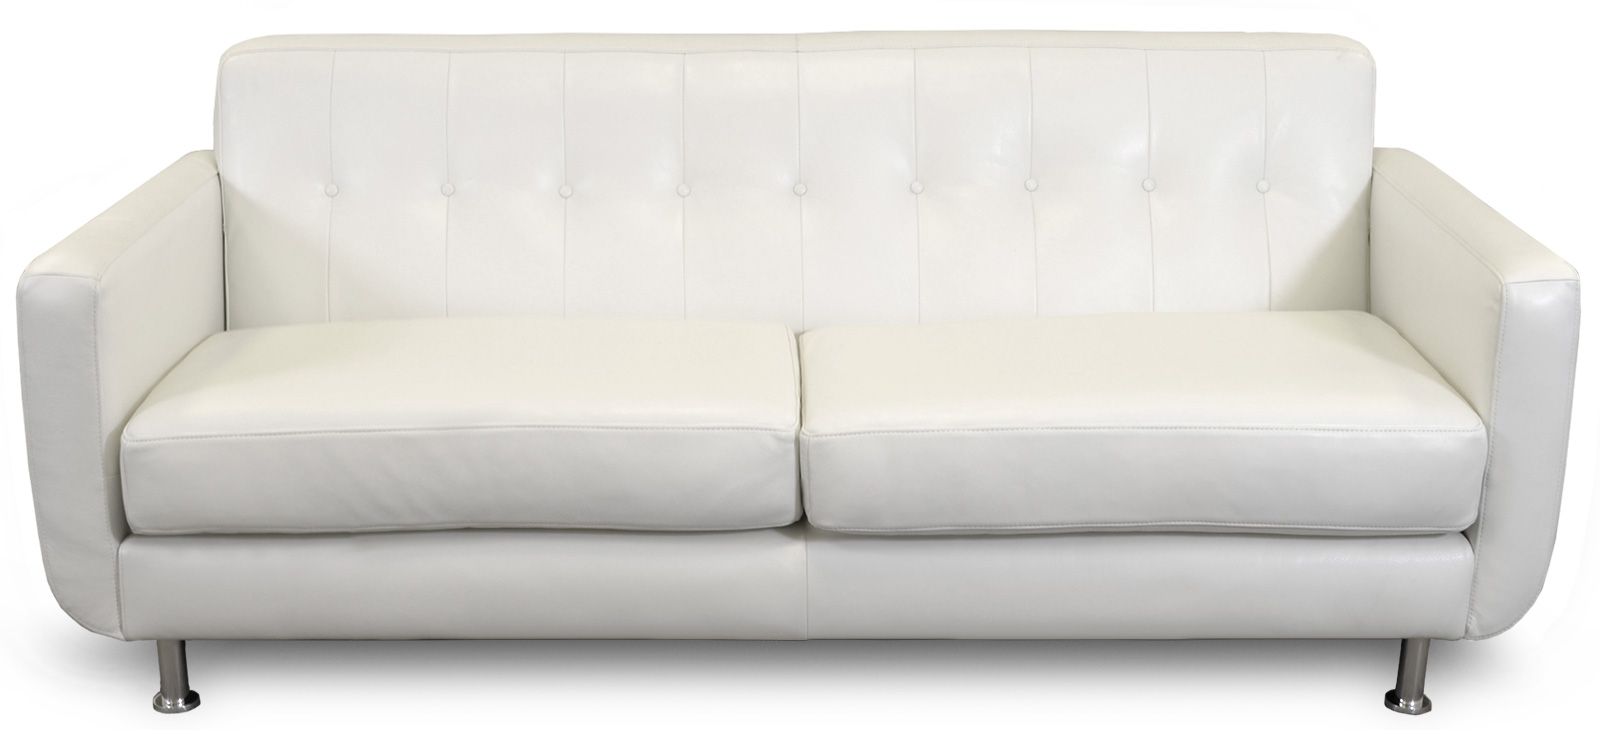 Greta 2 Cushion Sofa 1